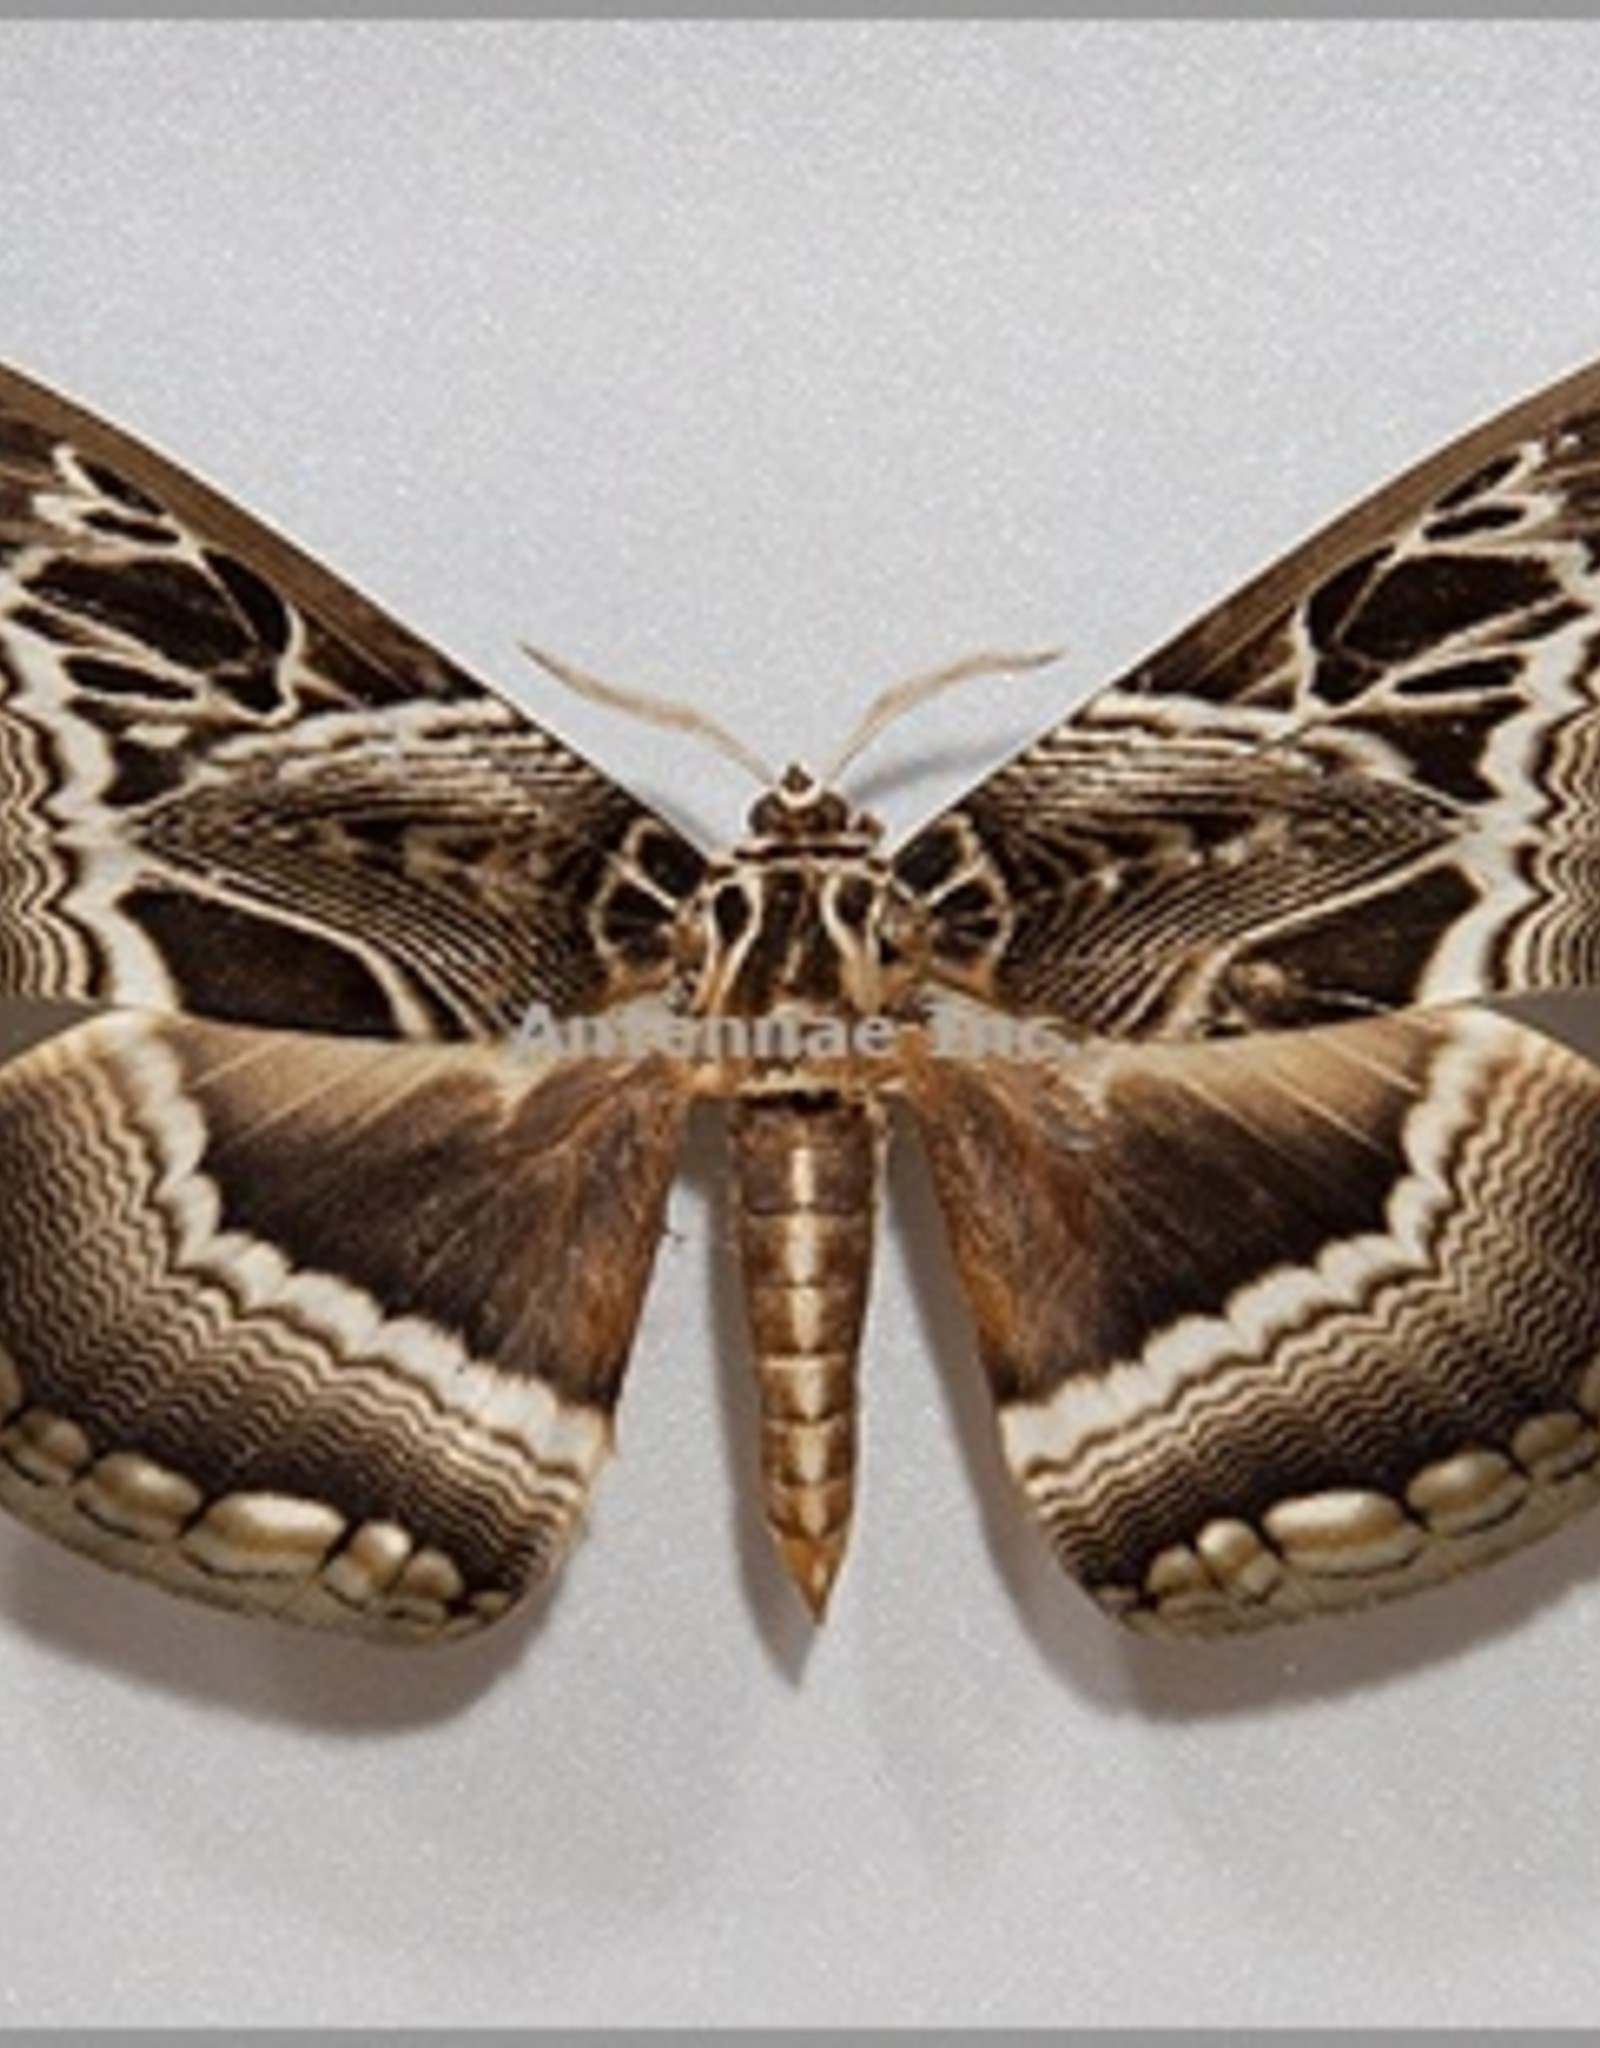 Dactylocerus lucina M A1 Cameroon